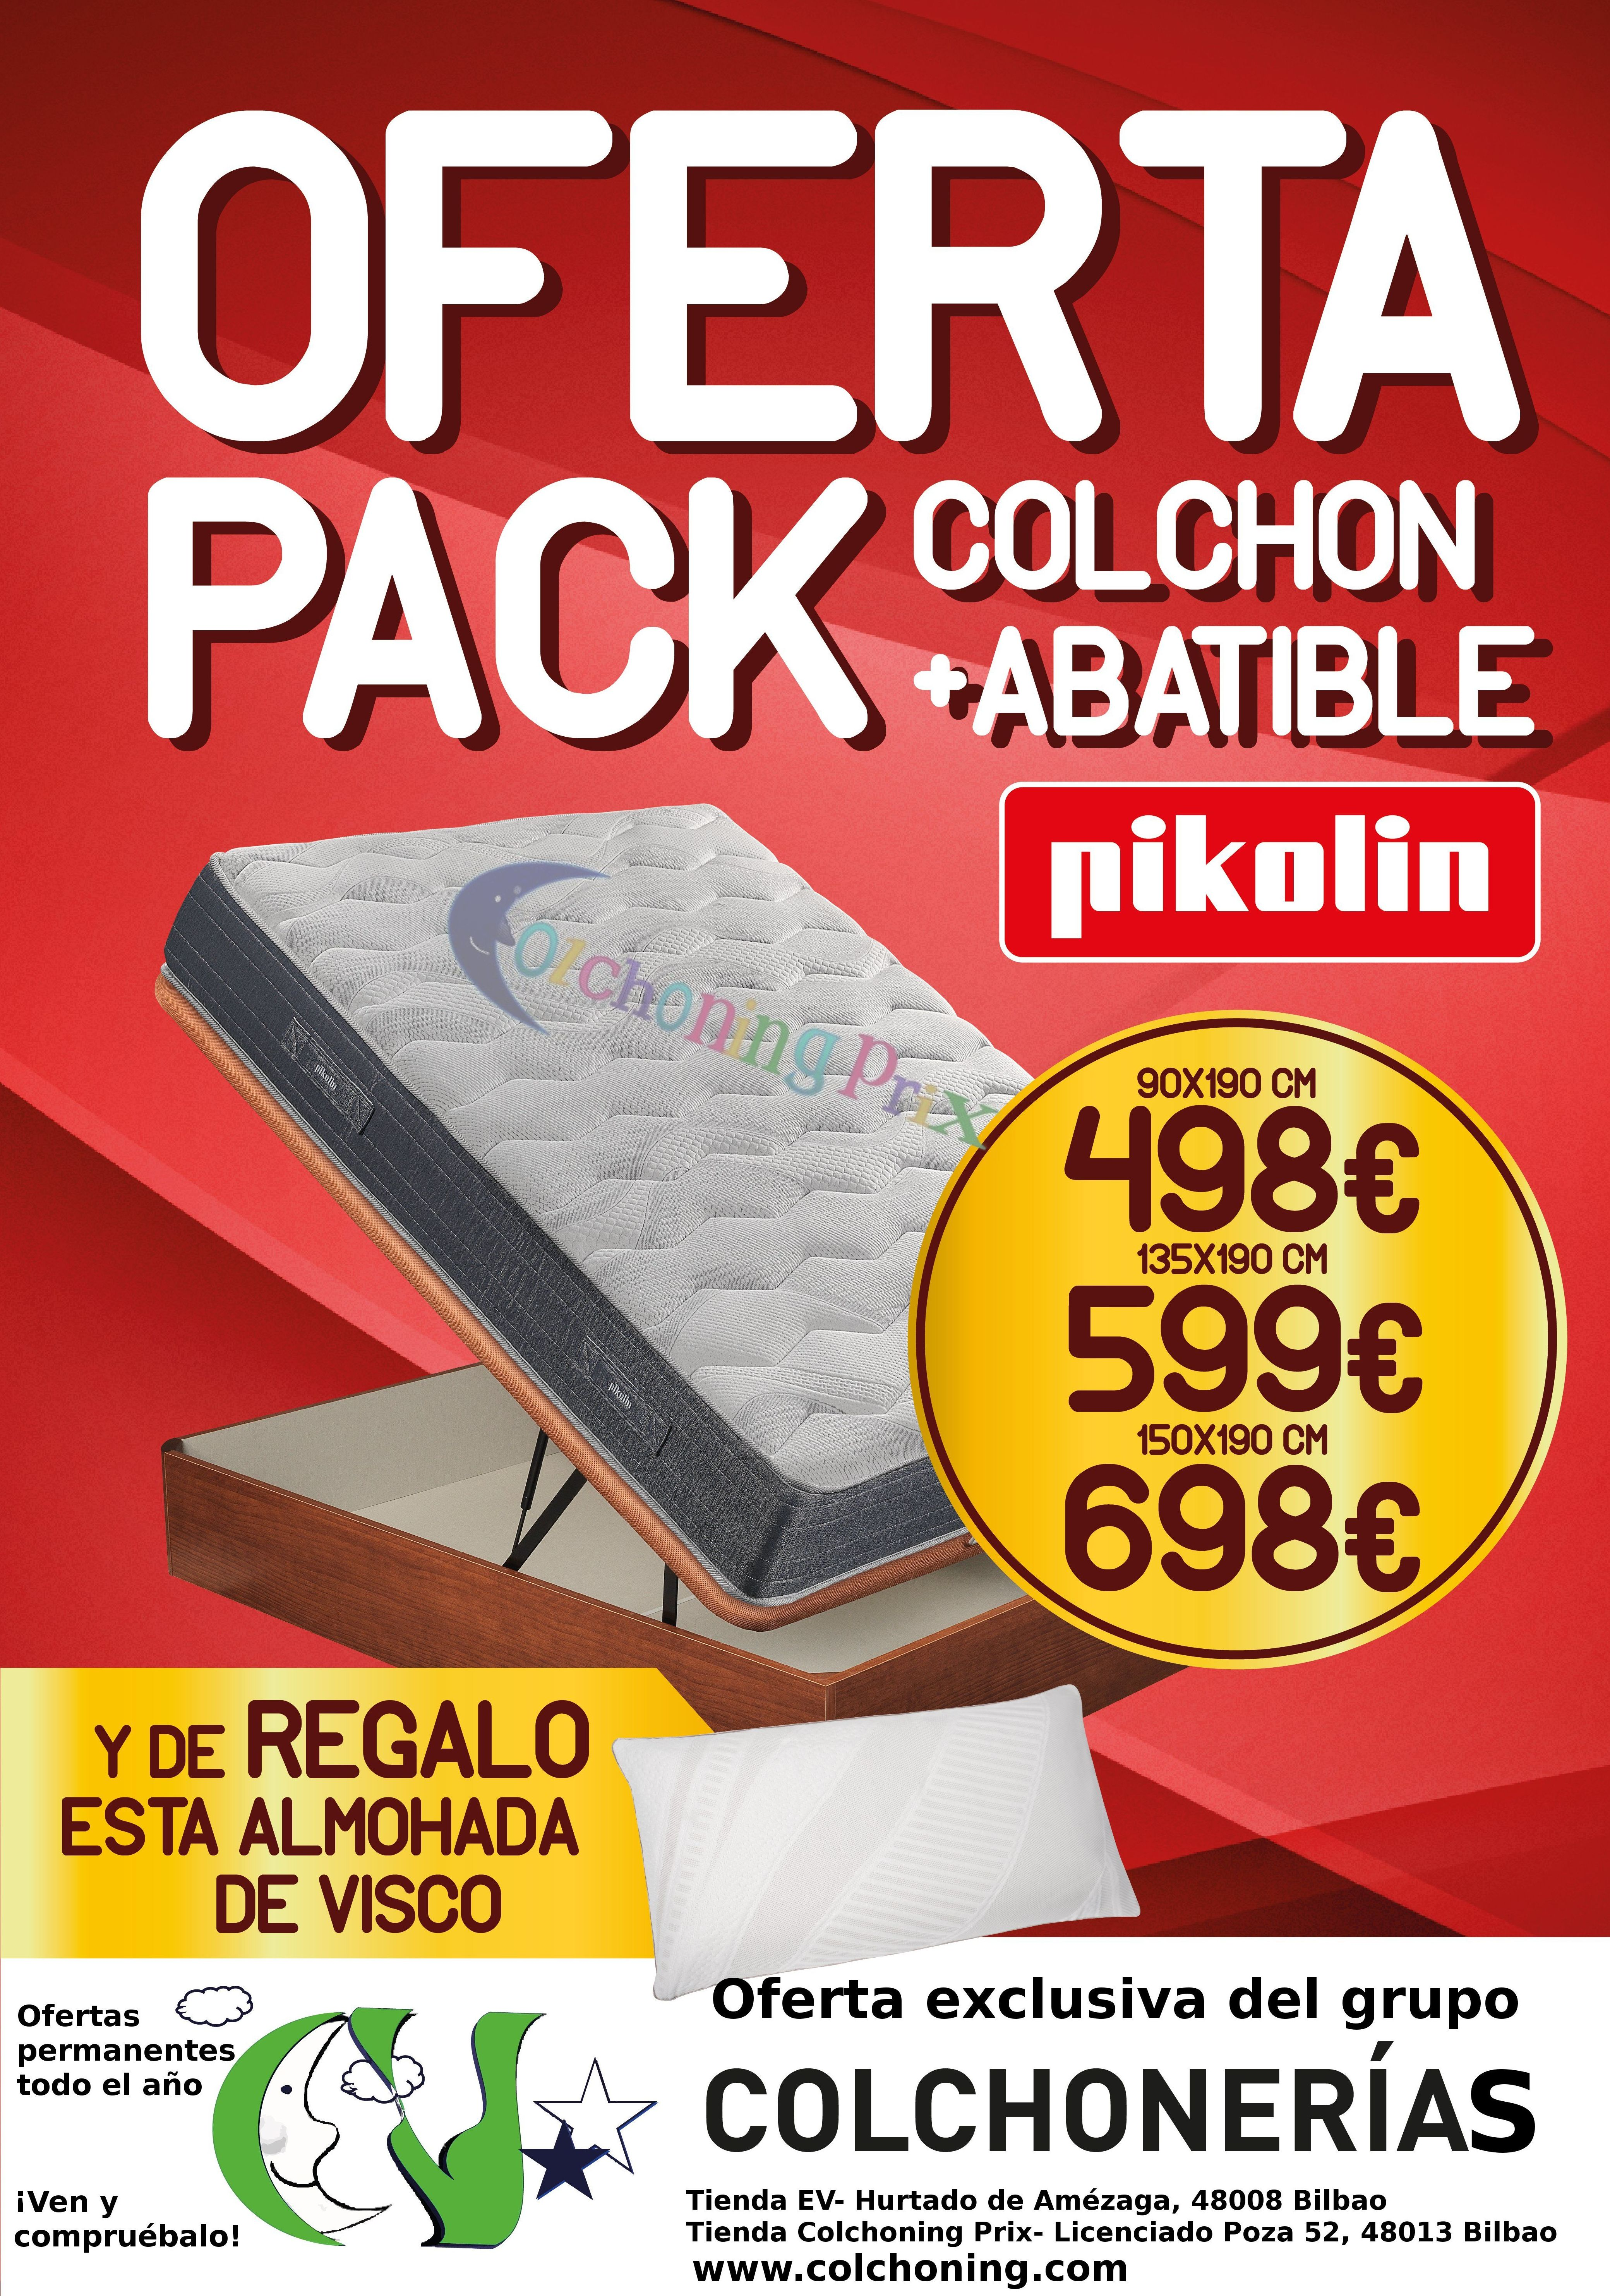 Oferta pack colch n y canap abatible pikolin 50 dto for Oferta canape y colchon